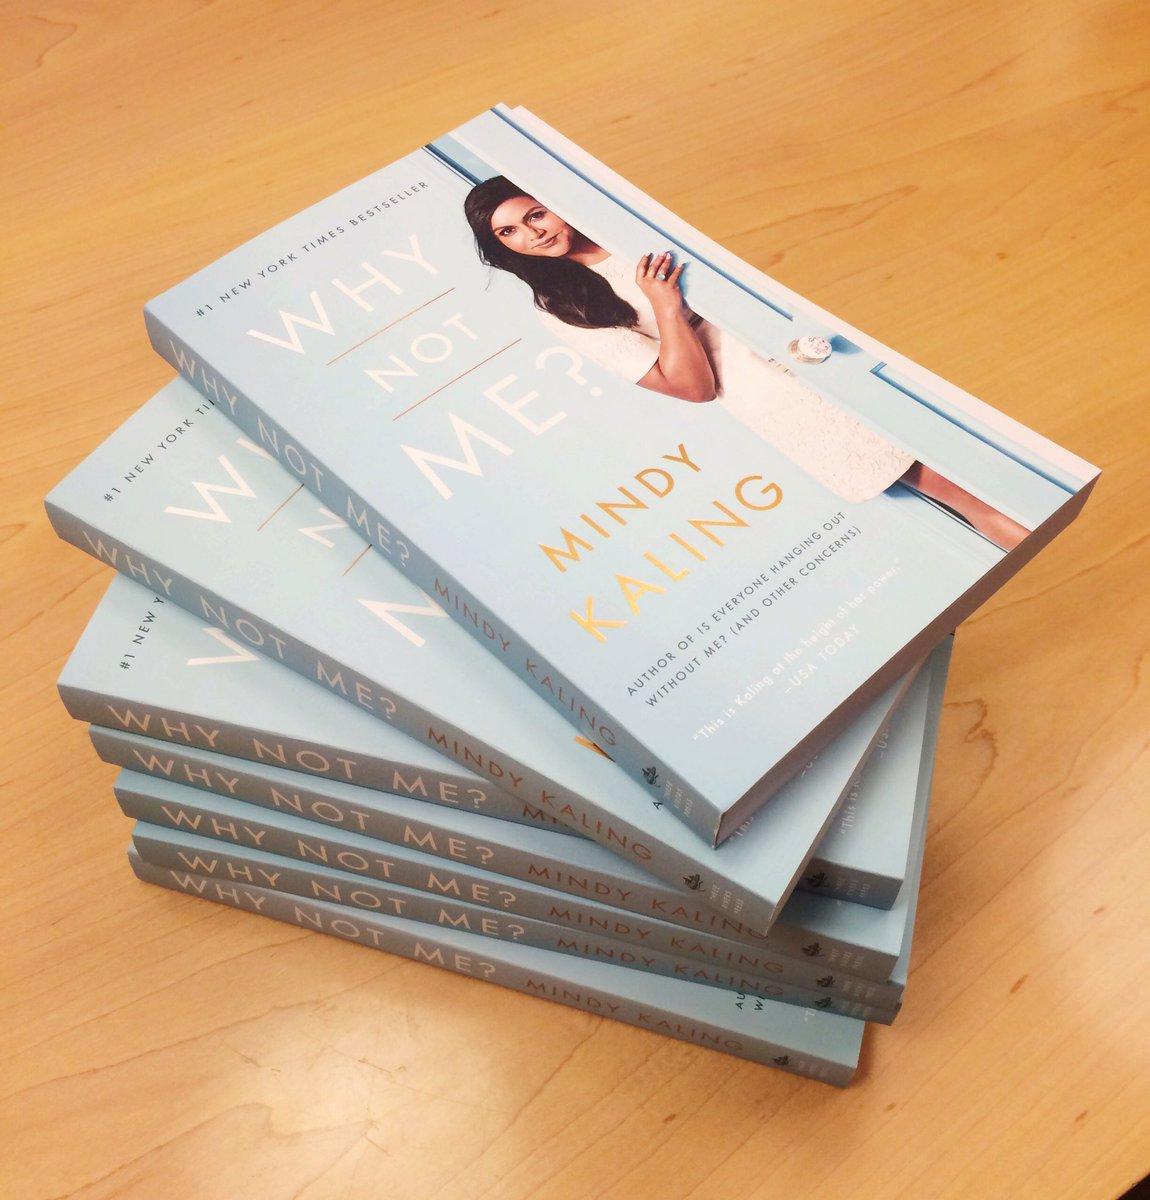 Mindy Kaling On Twitter Look What Just Landed Why Not Me Paperbacks Out 9 27 Preorder Now Or Later But Soon Https T Co Mgenxqacuj